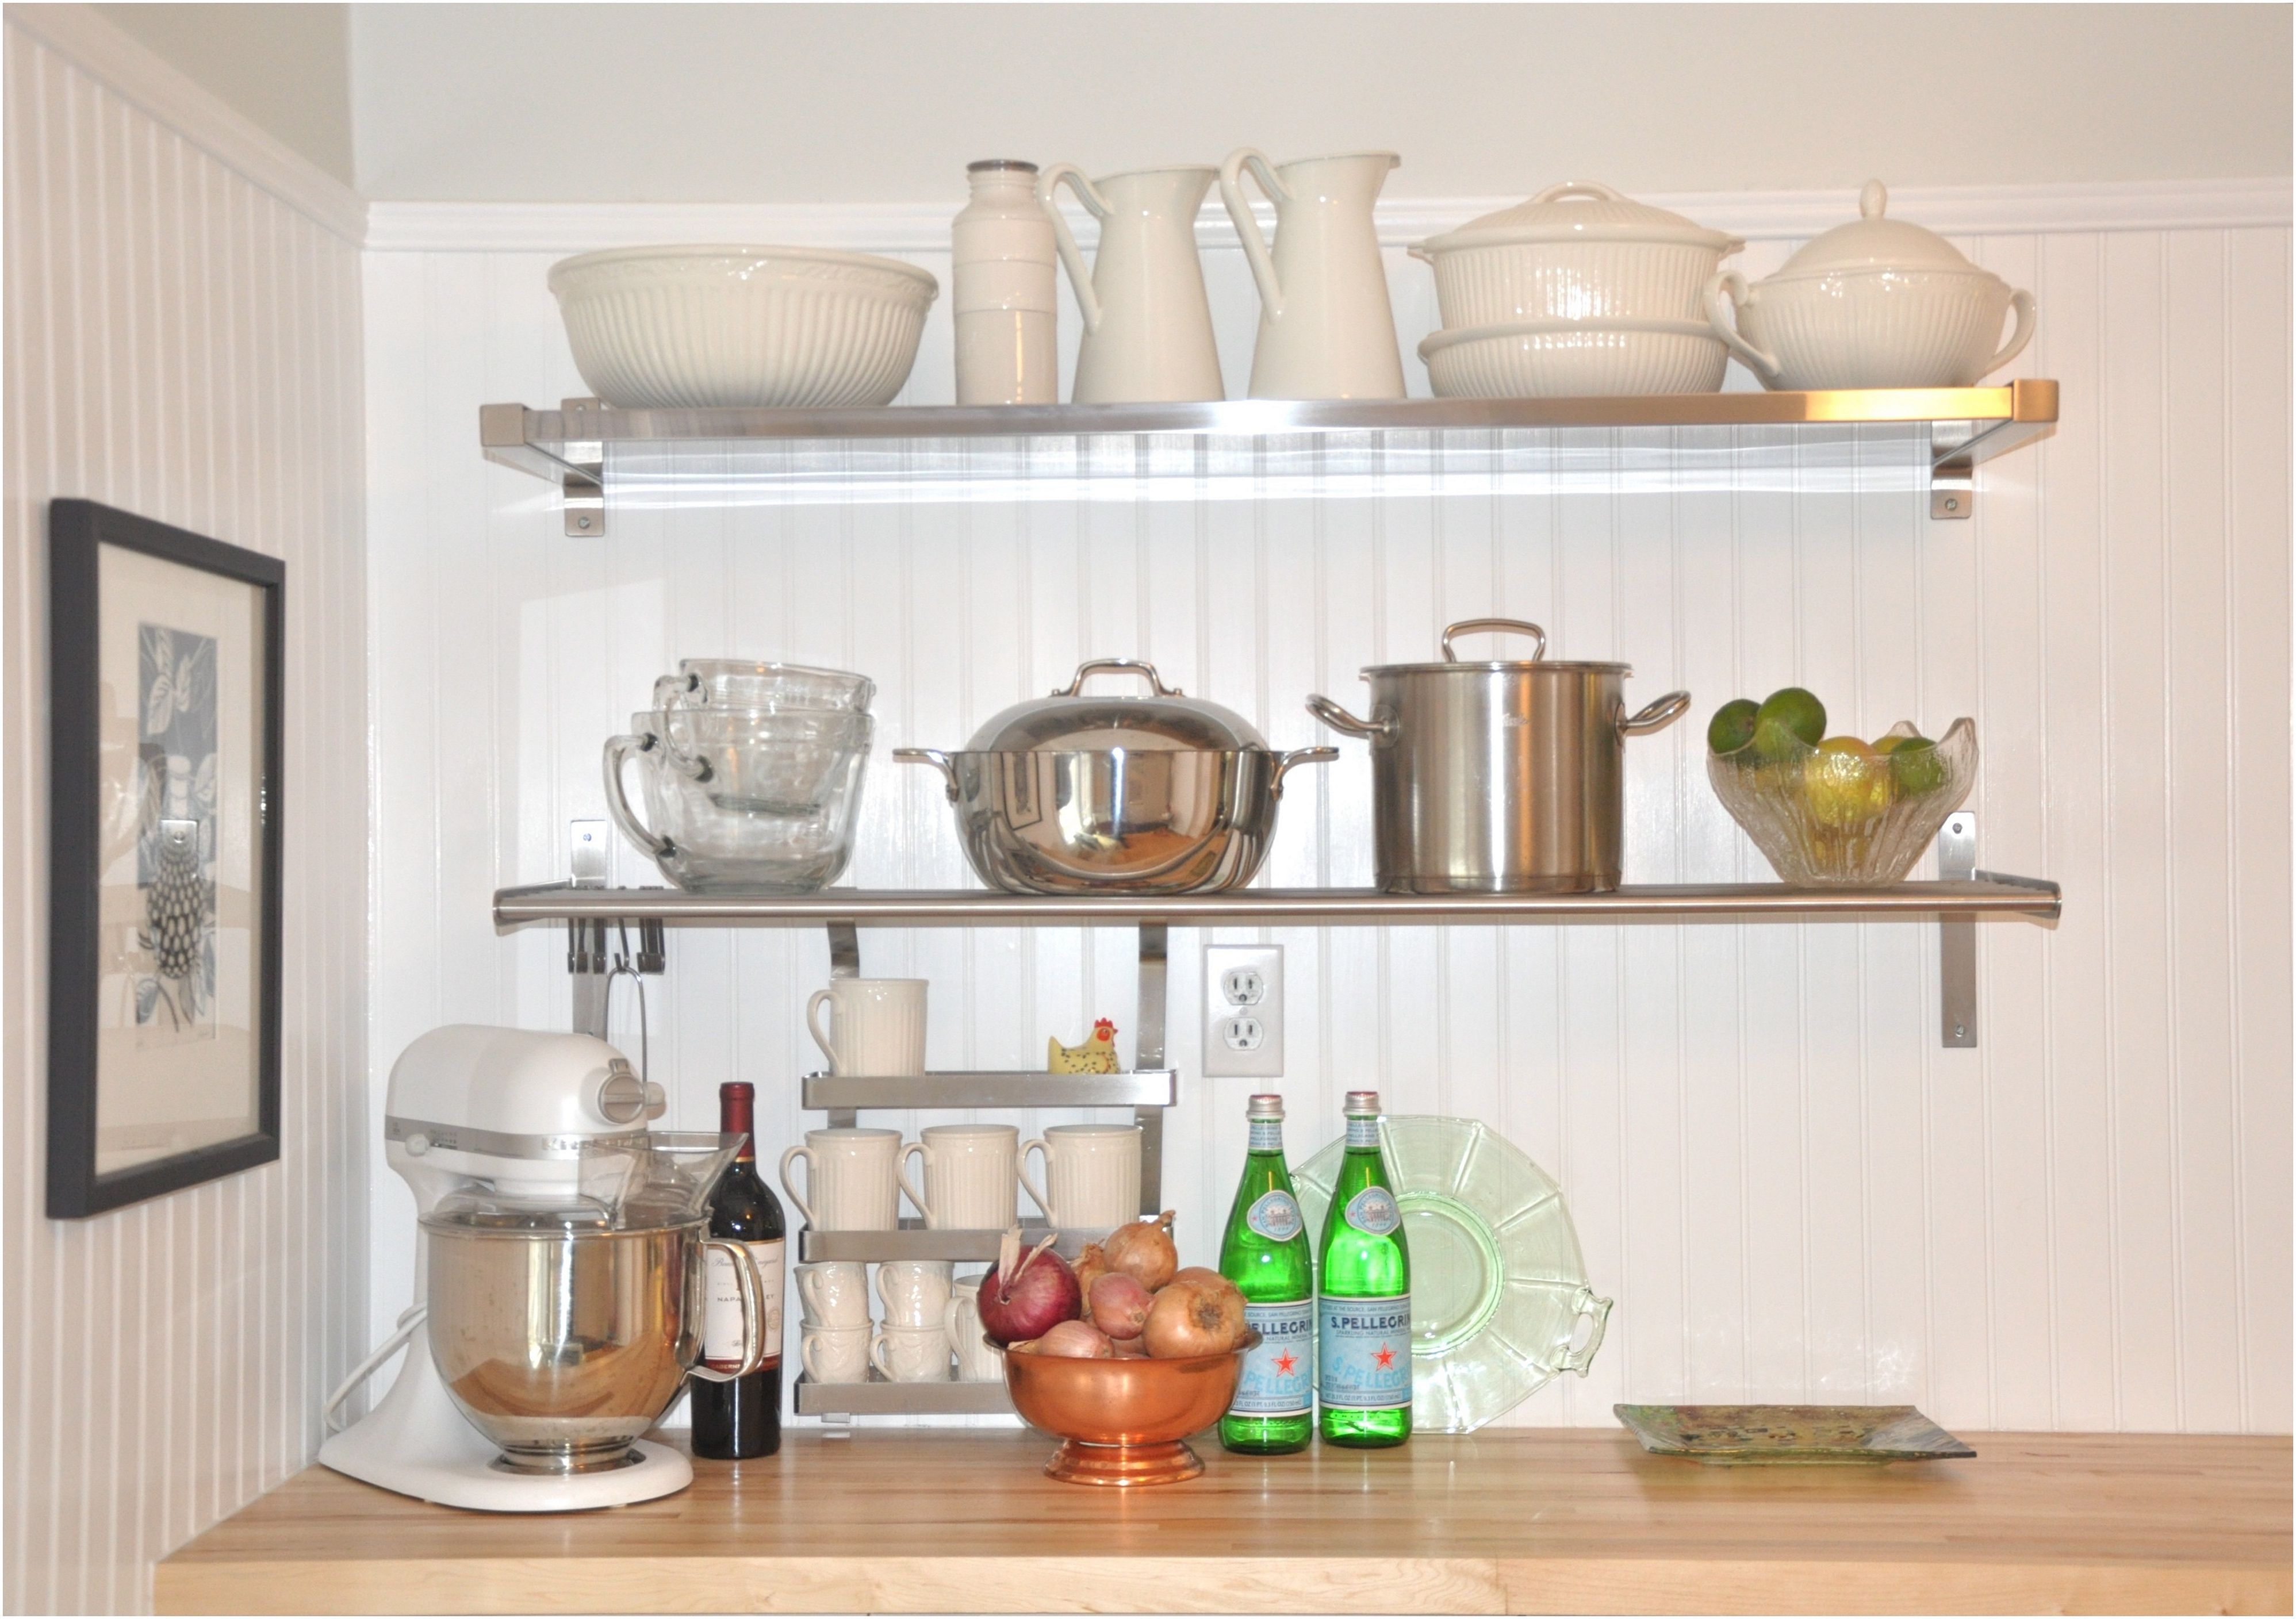 Breathtaking 30 Incredible Kitchen Wall Shelves Design You Have